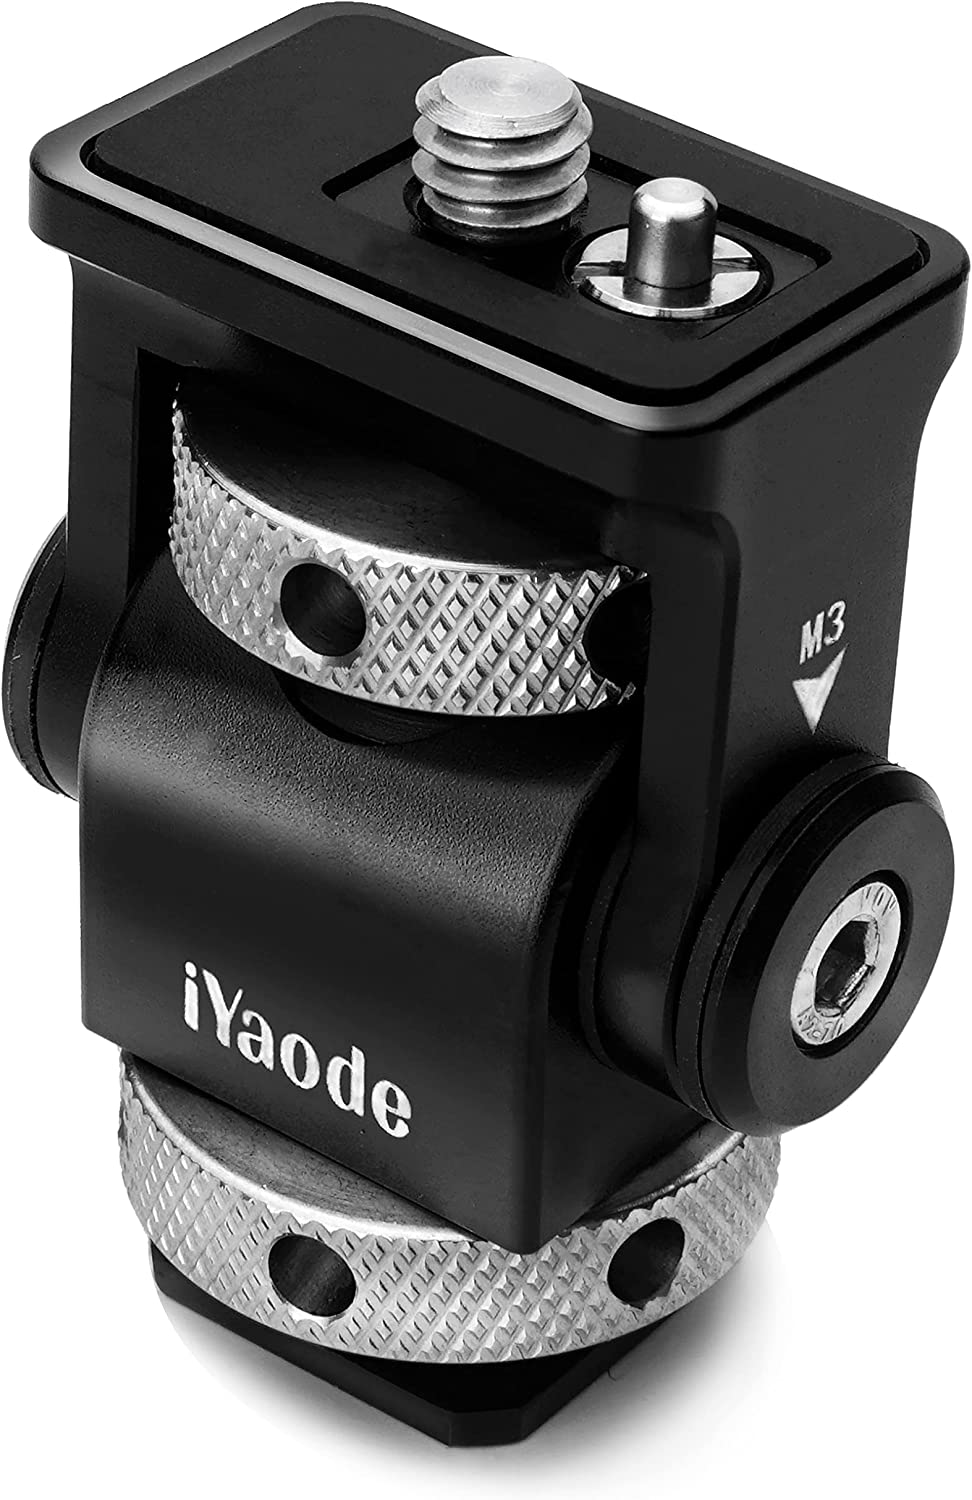 iYaode Camera Monitor Mount with Cold a 360° Shoe Base Selling rankings Swivel New item